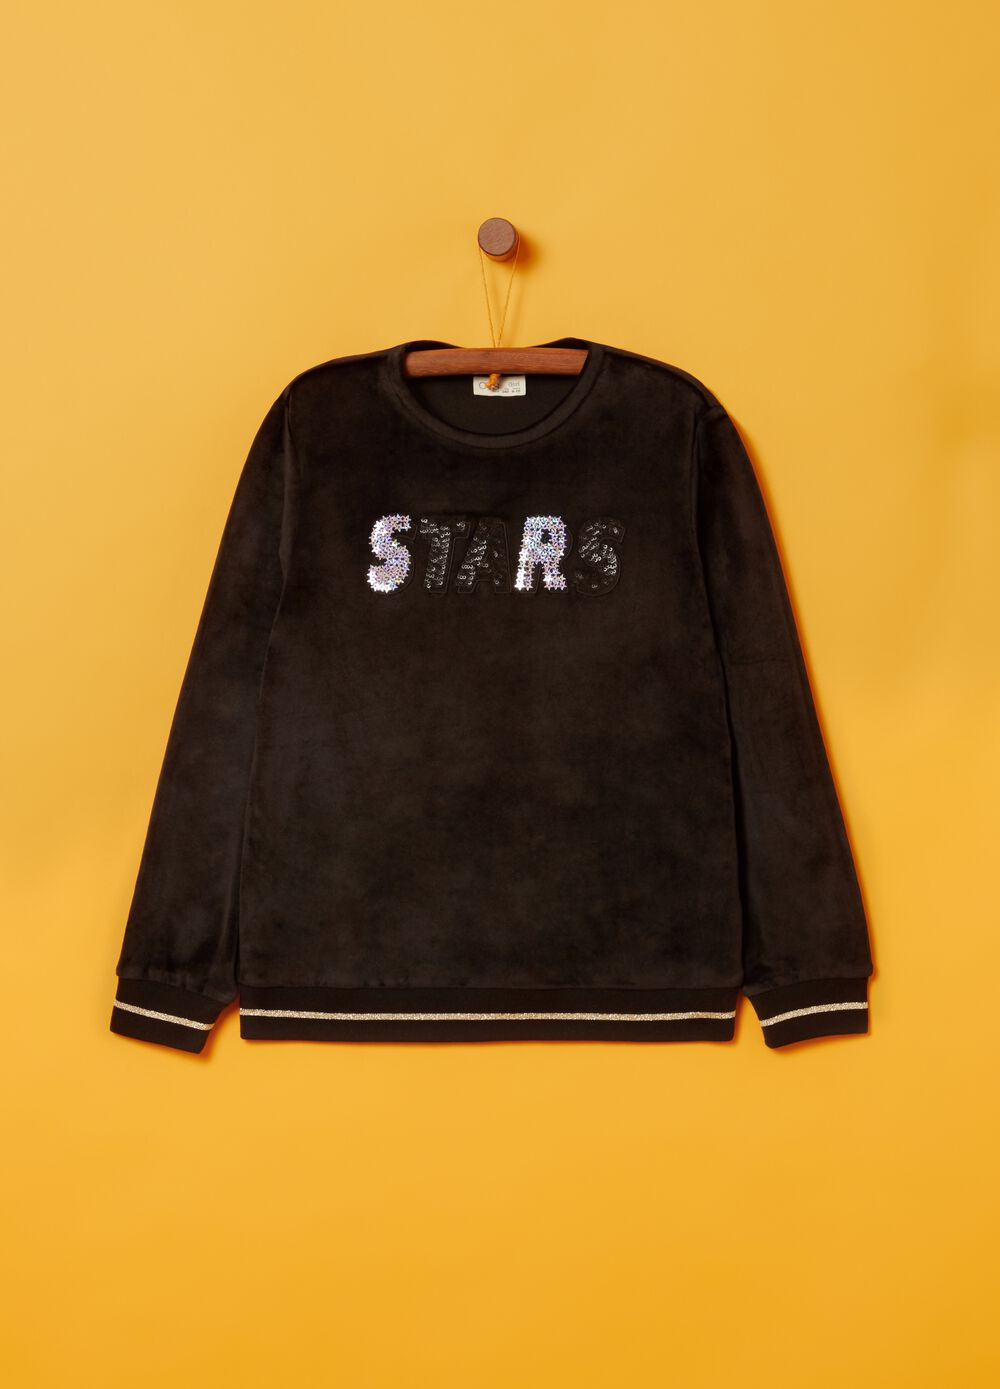 Sweatshirt with sequins, embroidery and glitter